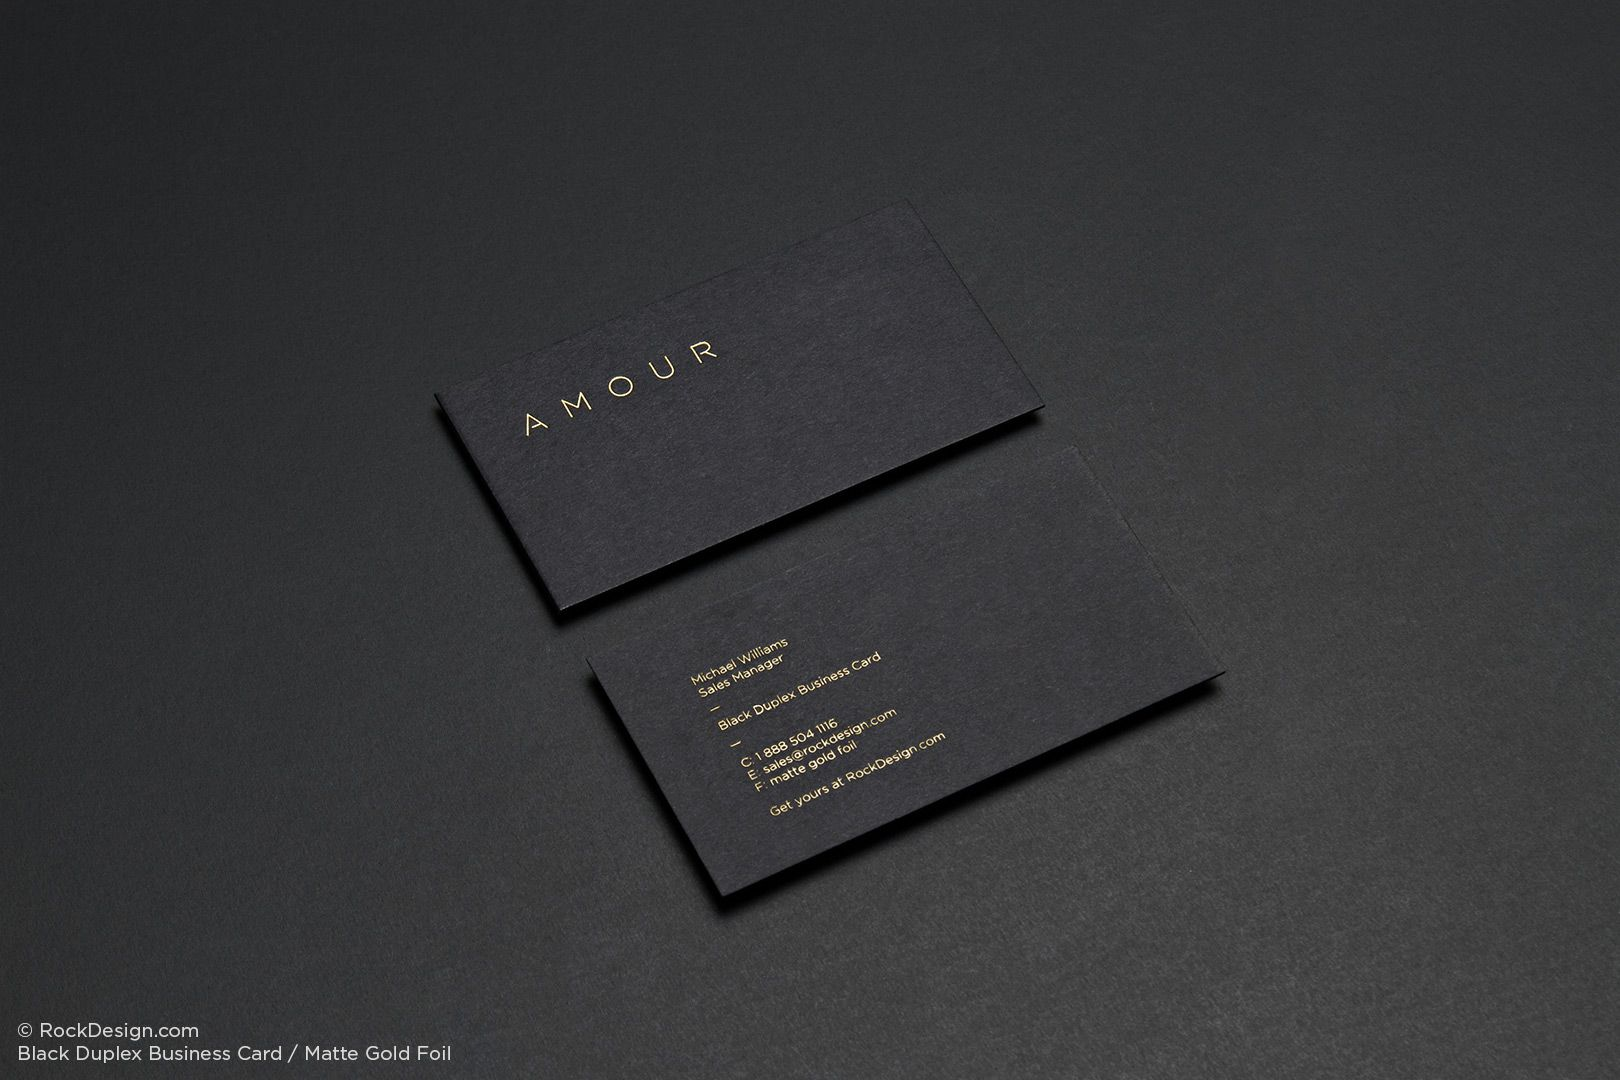 Black business cards rockdesign luxury business card printing print business cards online with our free templates using gold foil silver foil more our template is the perfect luxury card reheart Choice Image